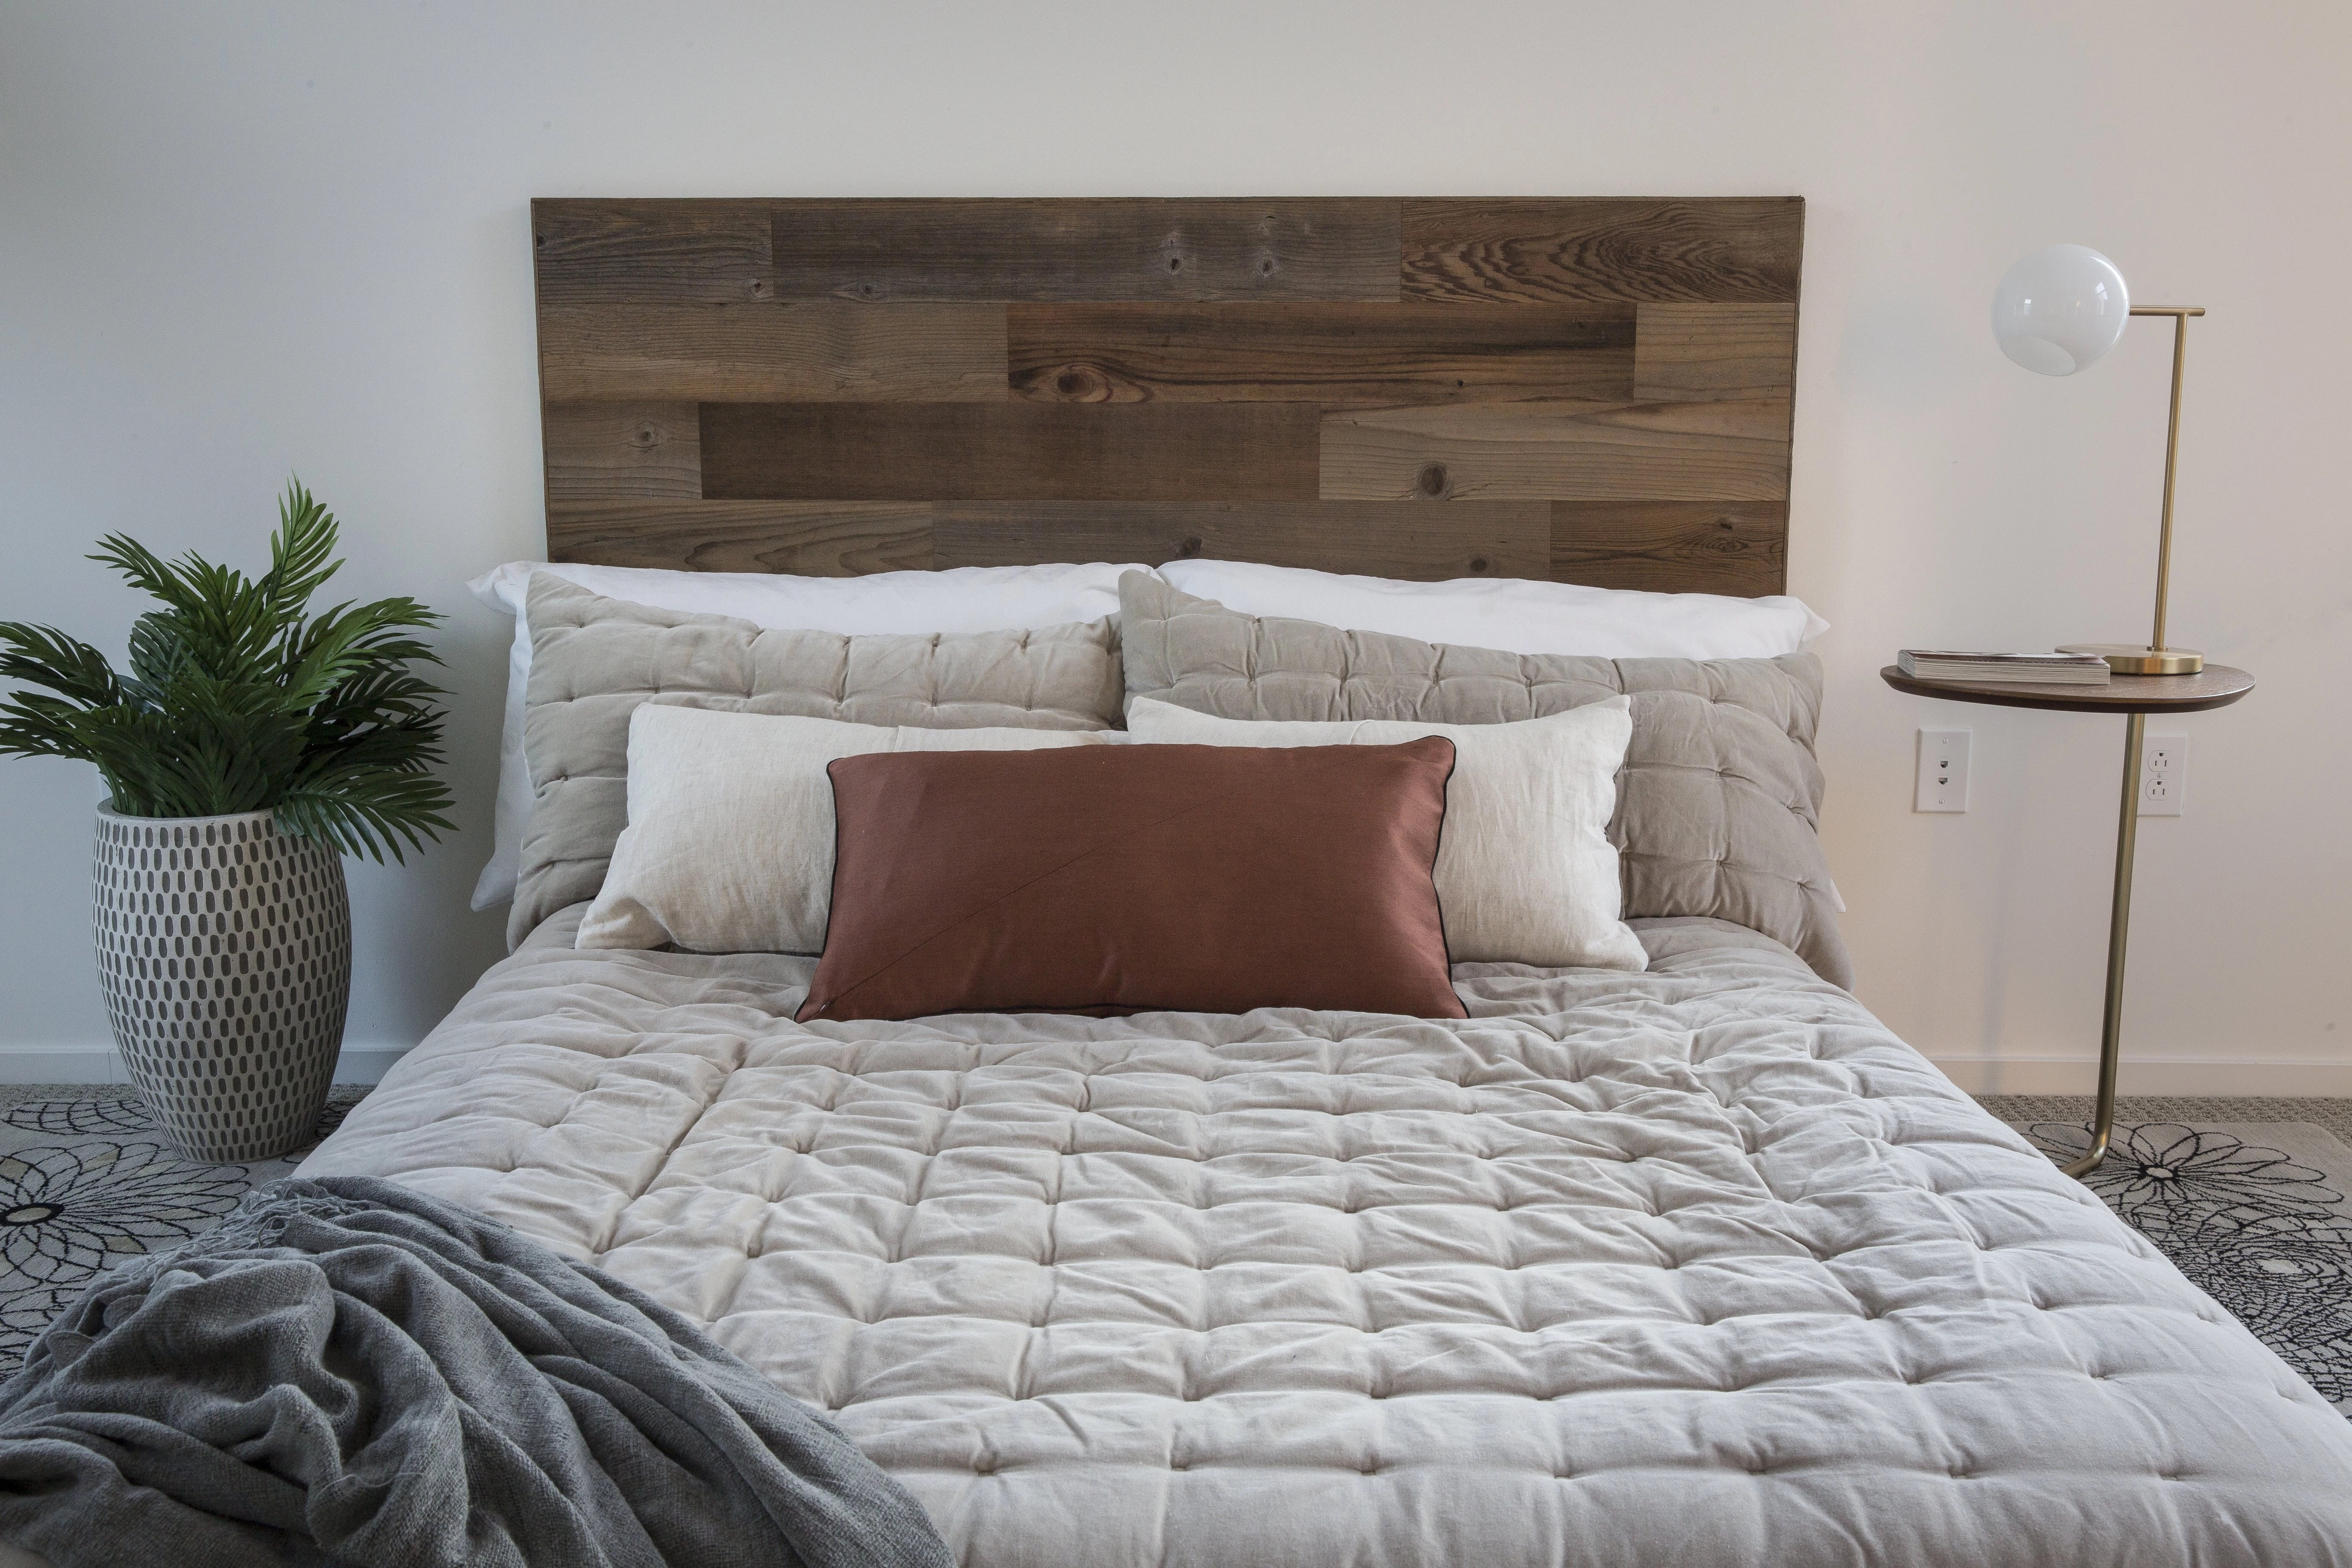 DIY reclaimed wood headboard ont he wall behind a bed, made with real barnwood that comes with a Stikits headboard kit.